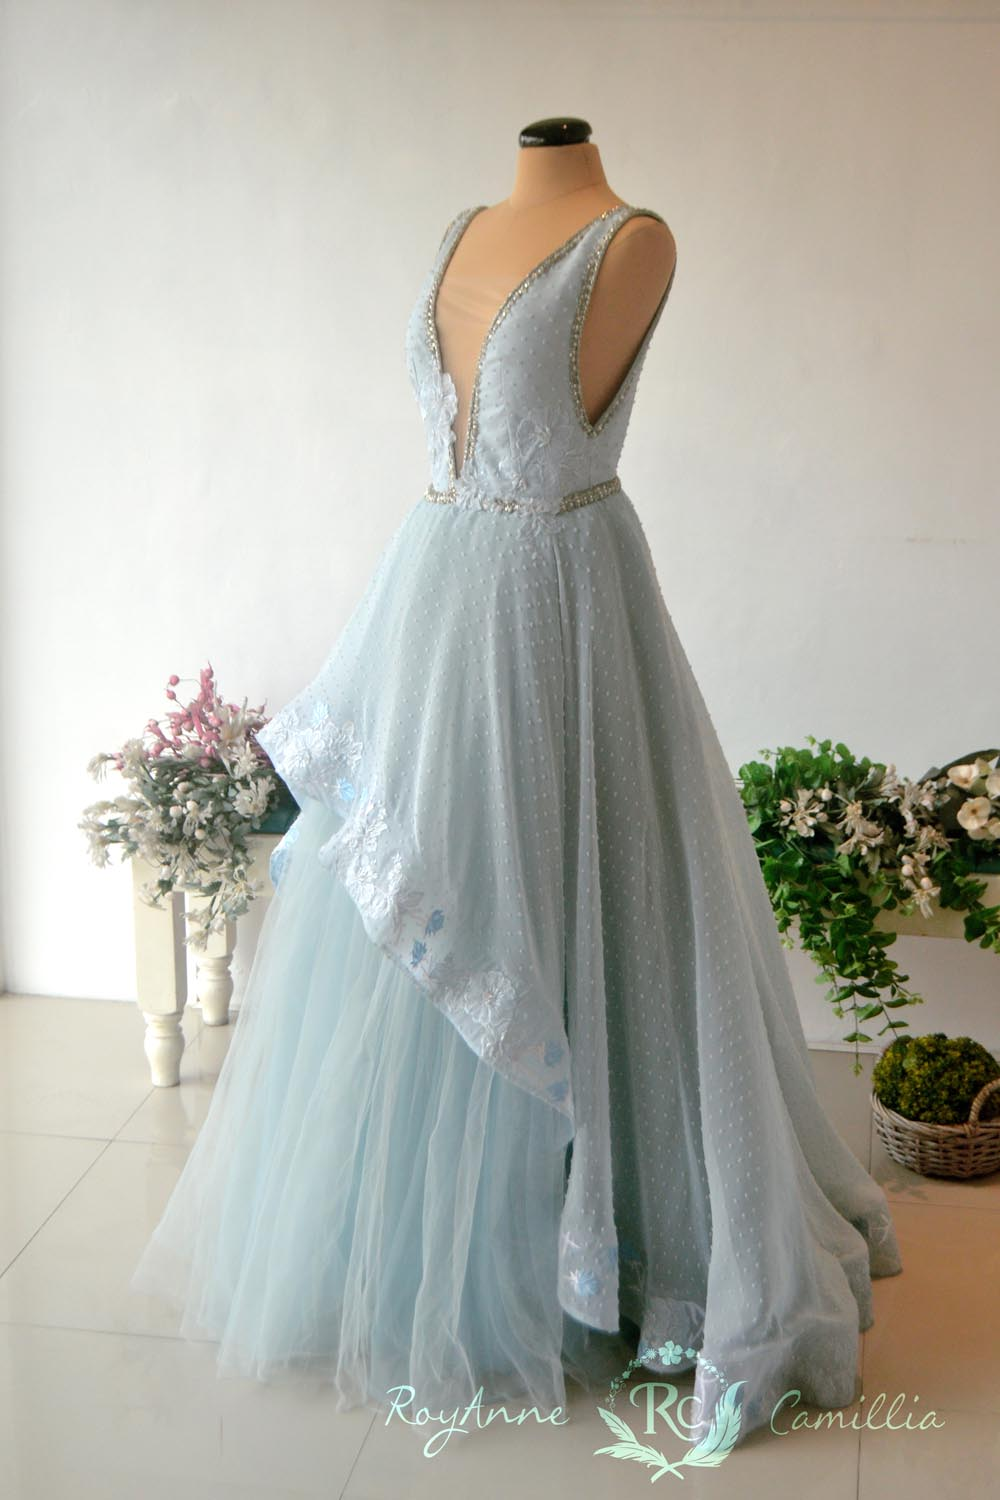 Alexine royanne camillia couture bridal gowns and gown for Wedding dresses for rental